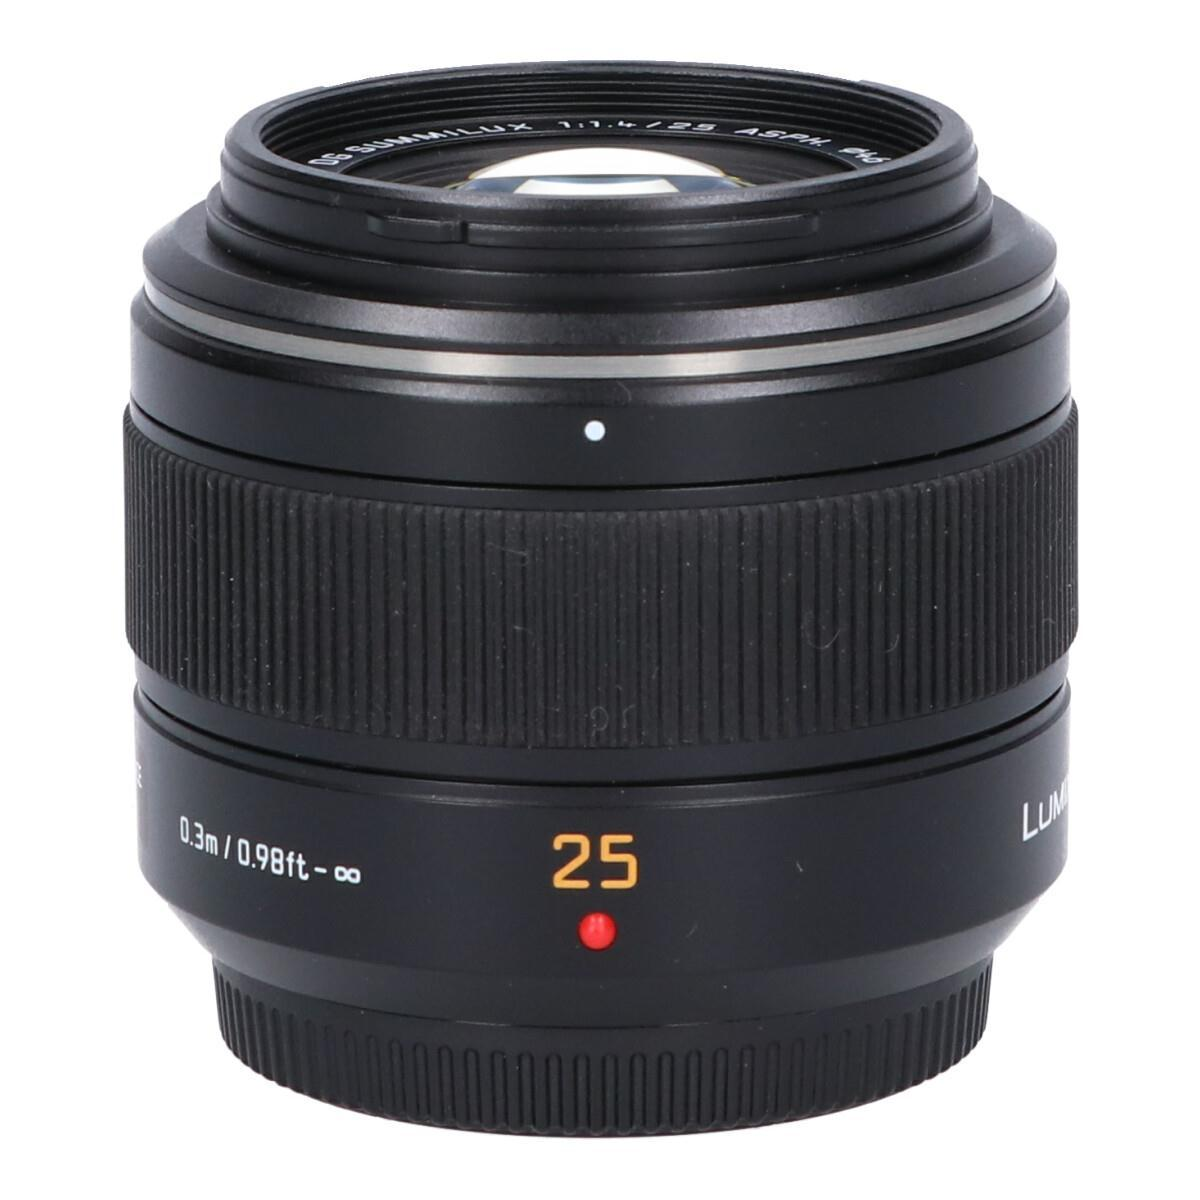 PANASONIC DG SUMMILUX25mm F1.4